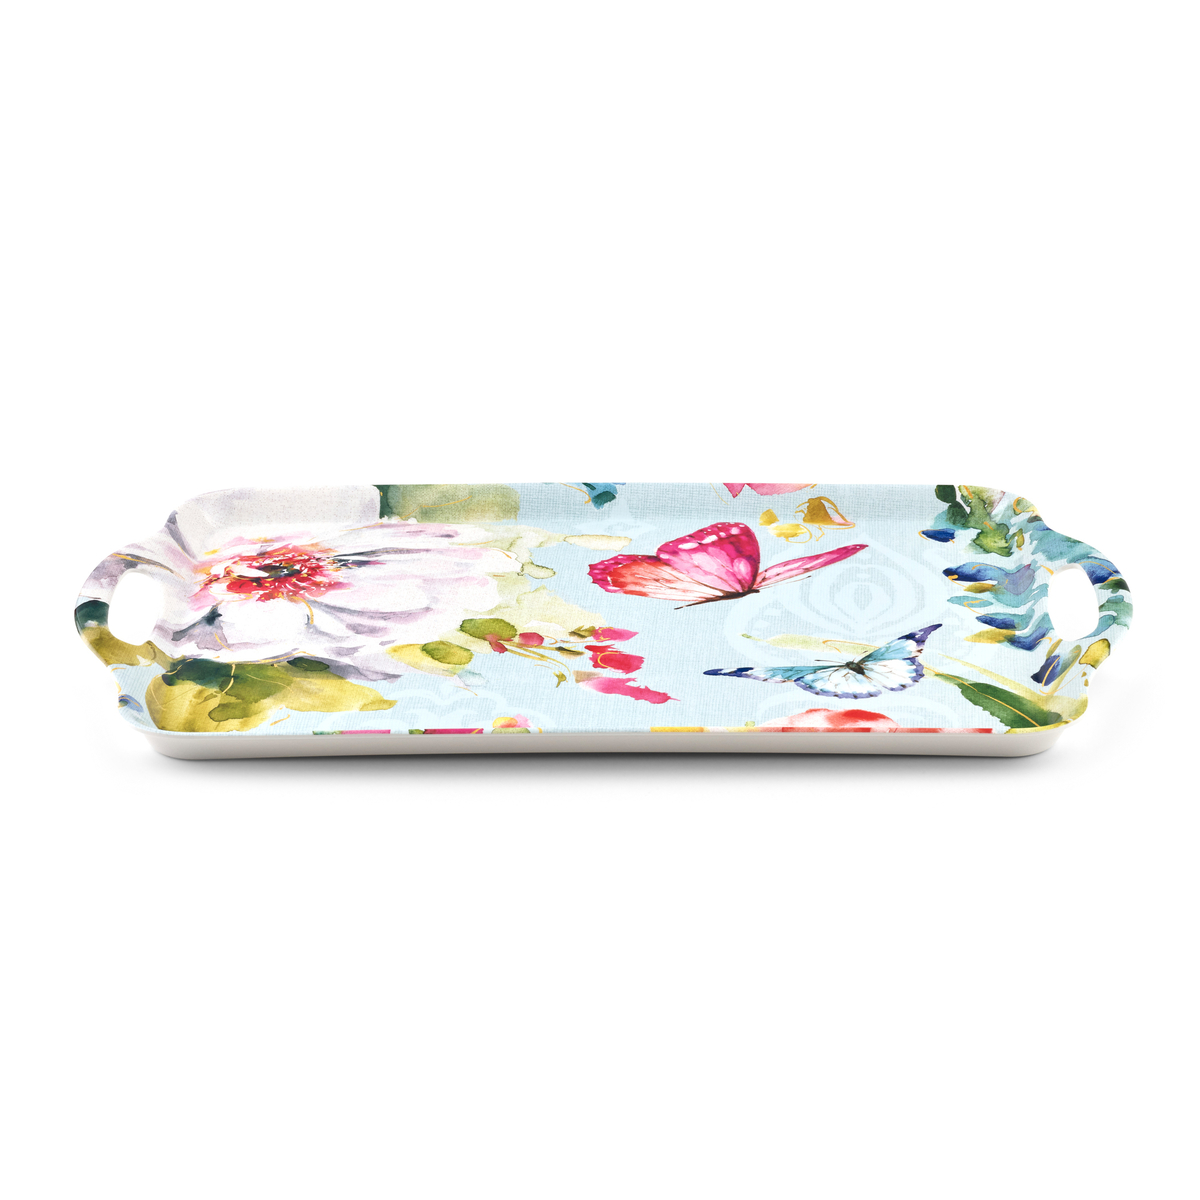 Pimpernel Colorful Breeze Large Melamine Handled Tray image number 1